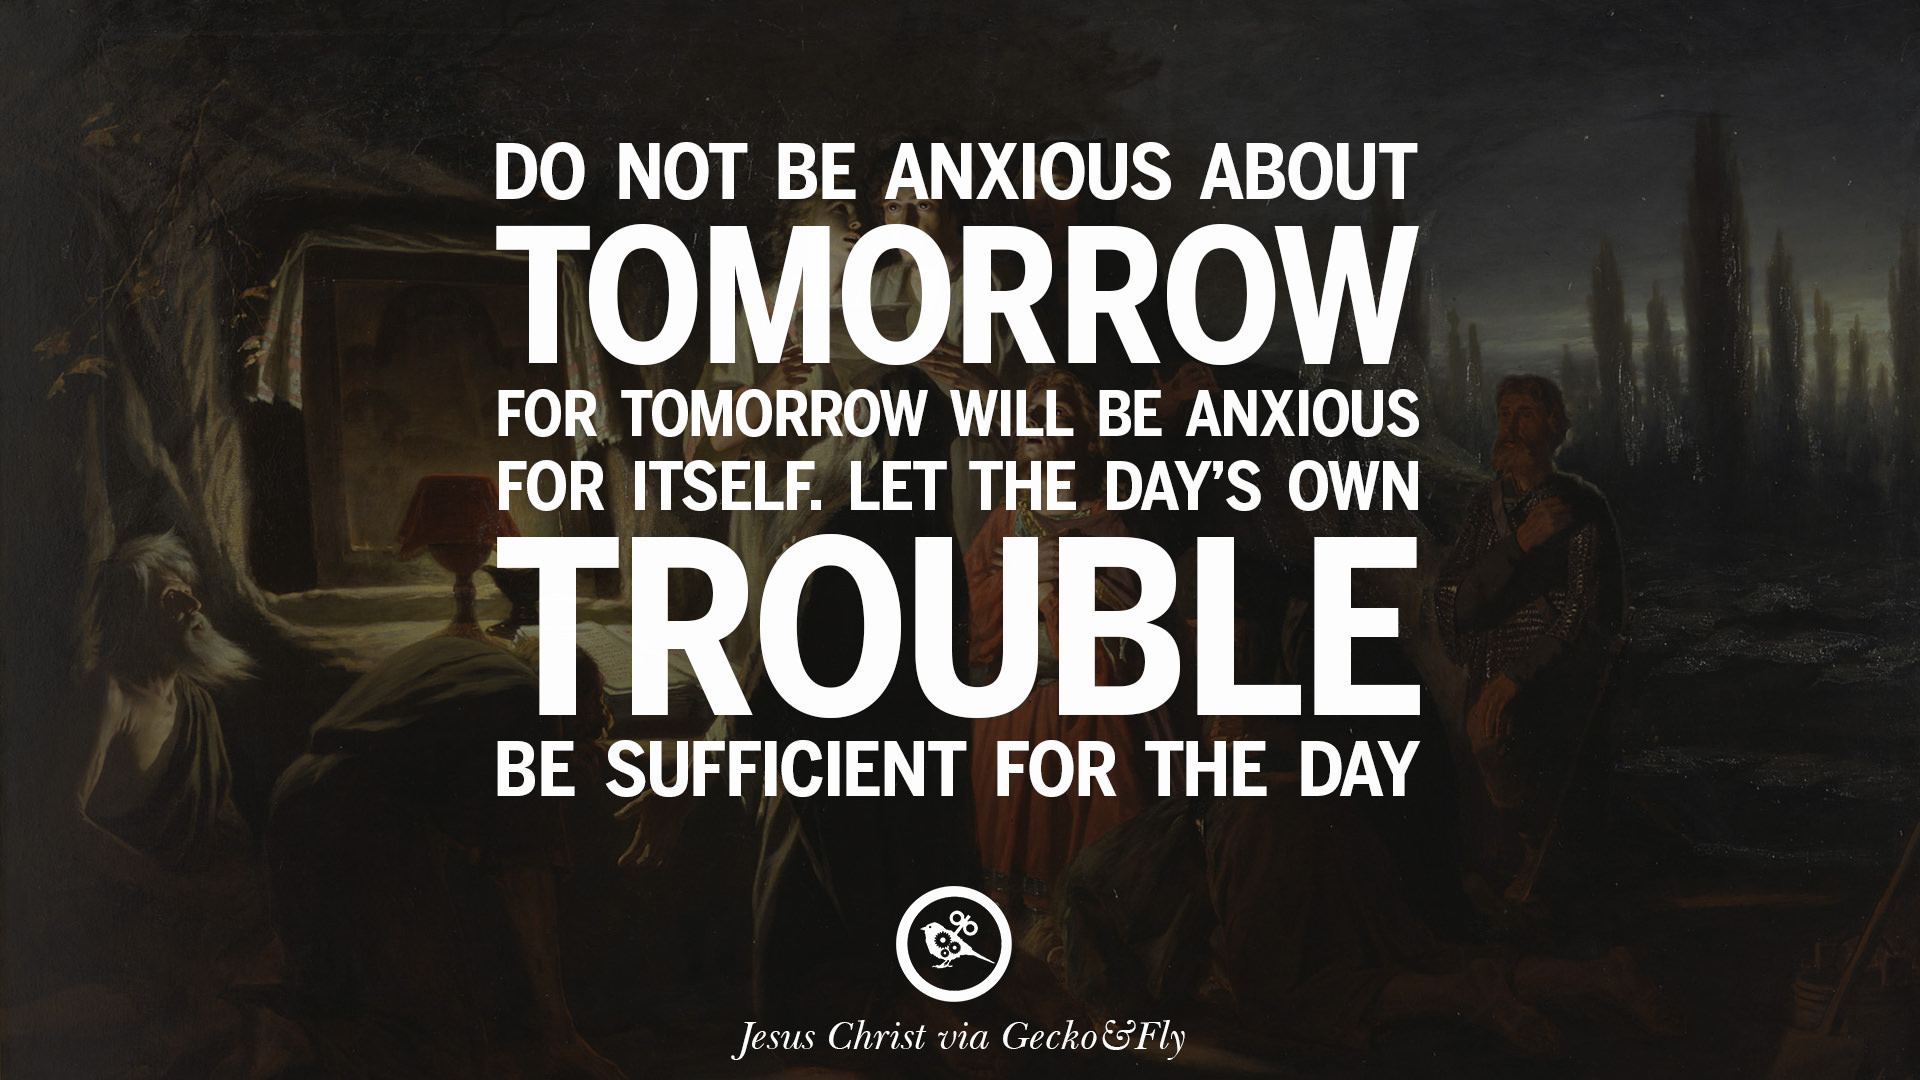 Do no be anxious about tomorrow for tomorrow will be anxious for itself let the days own trouble be sufficient for the day jesus christ